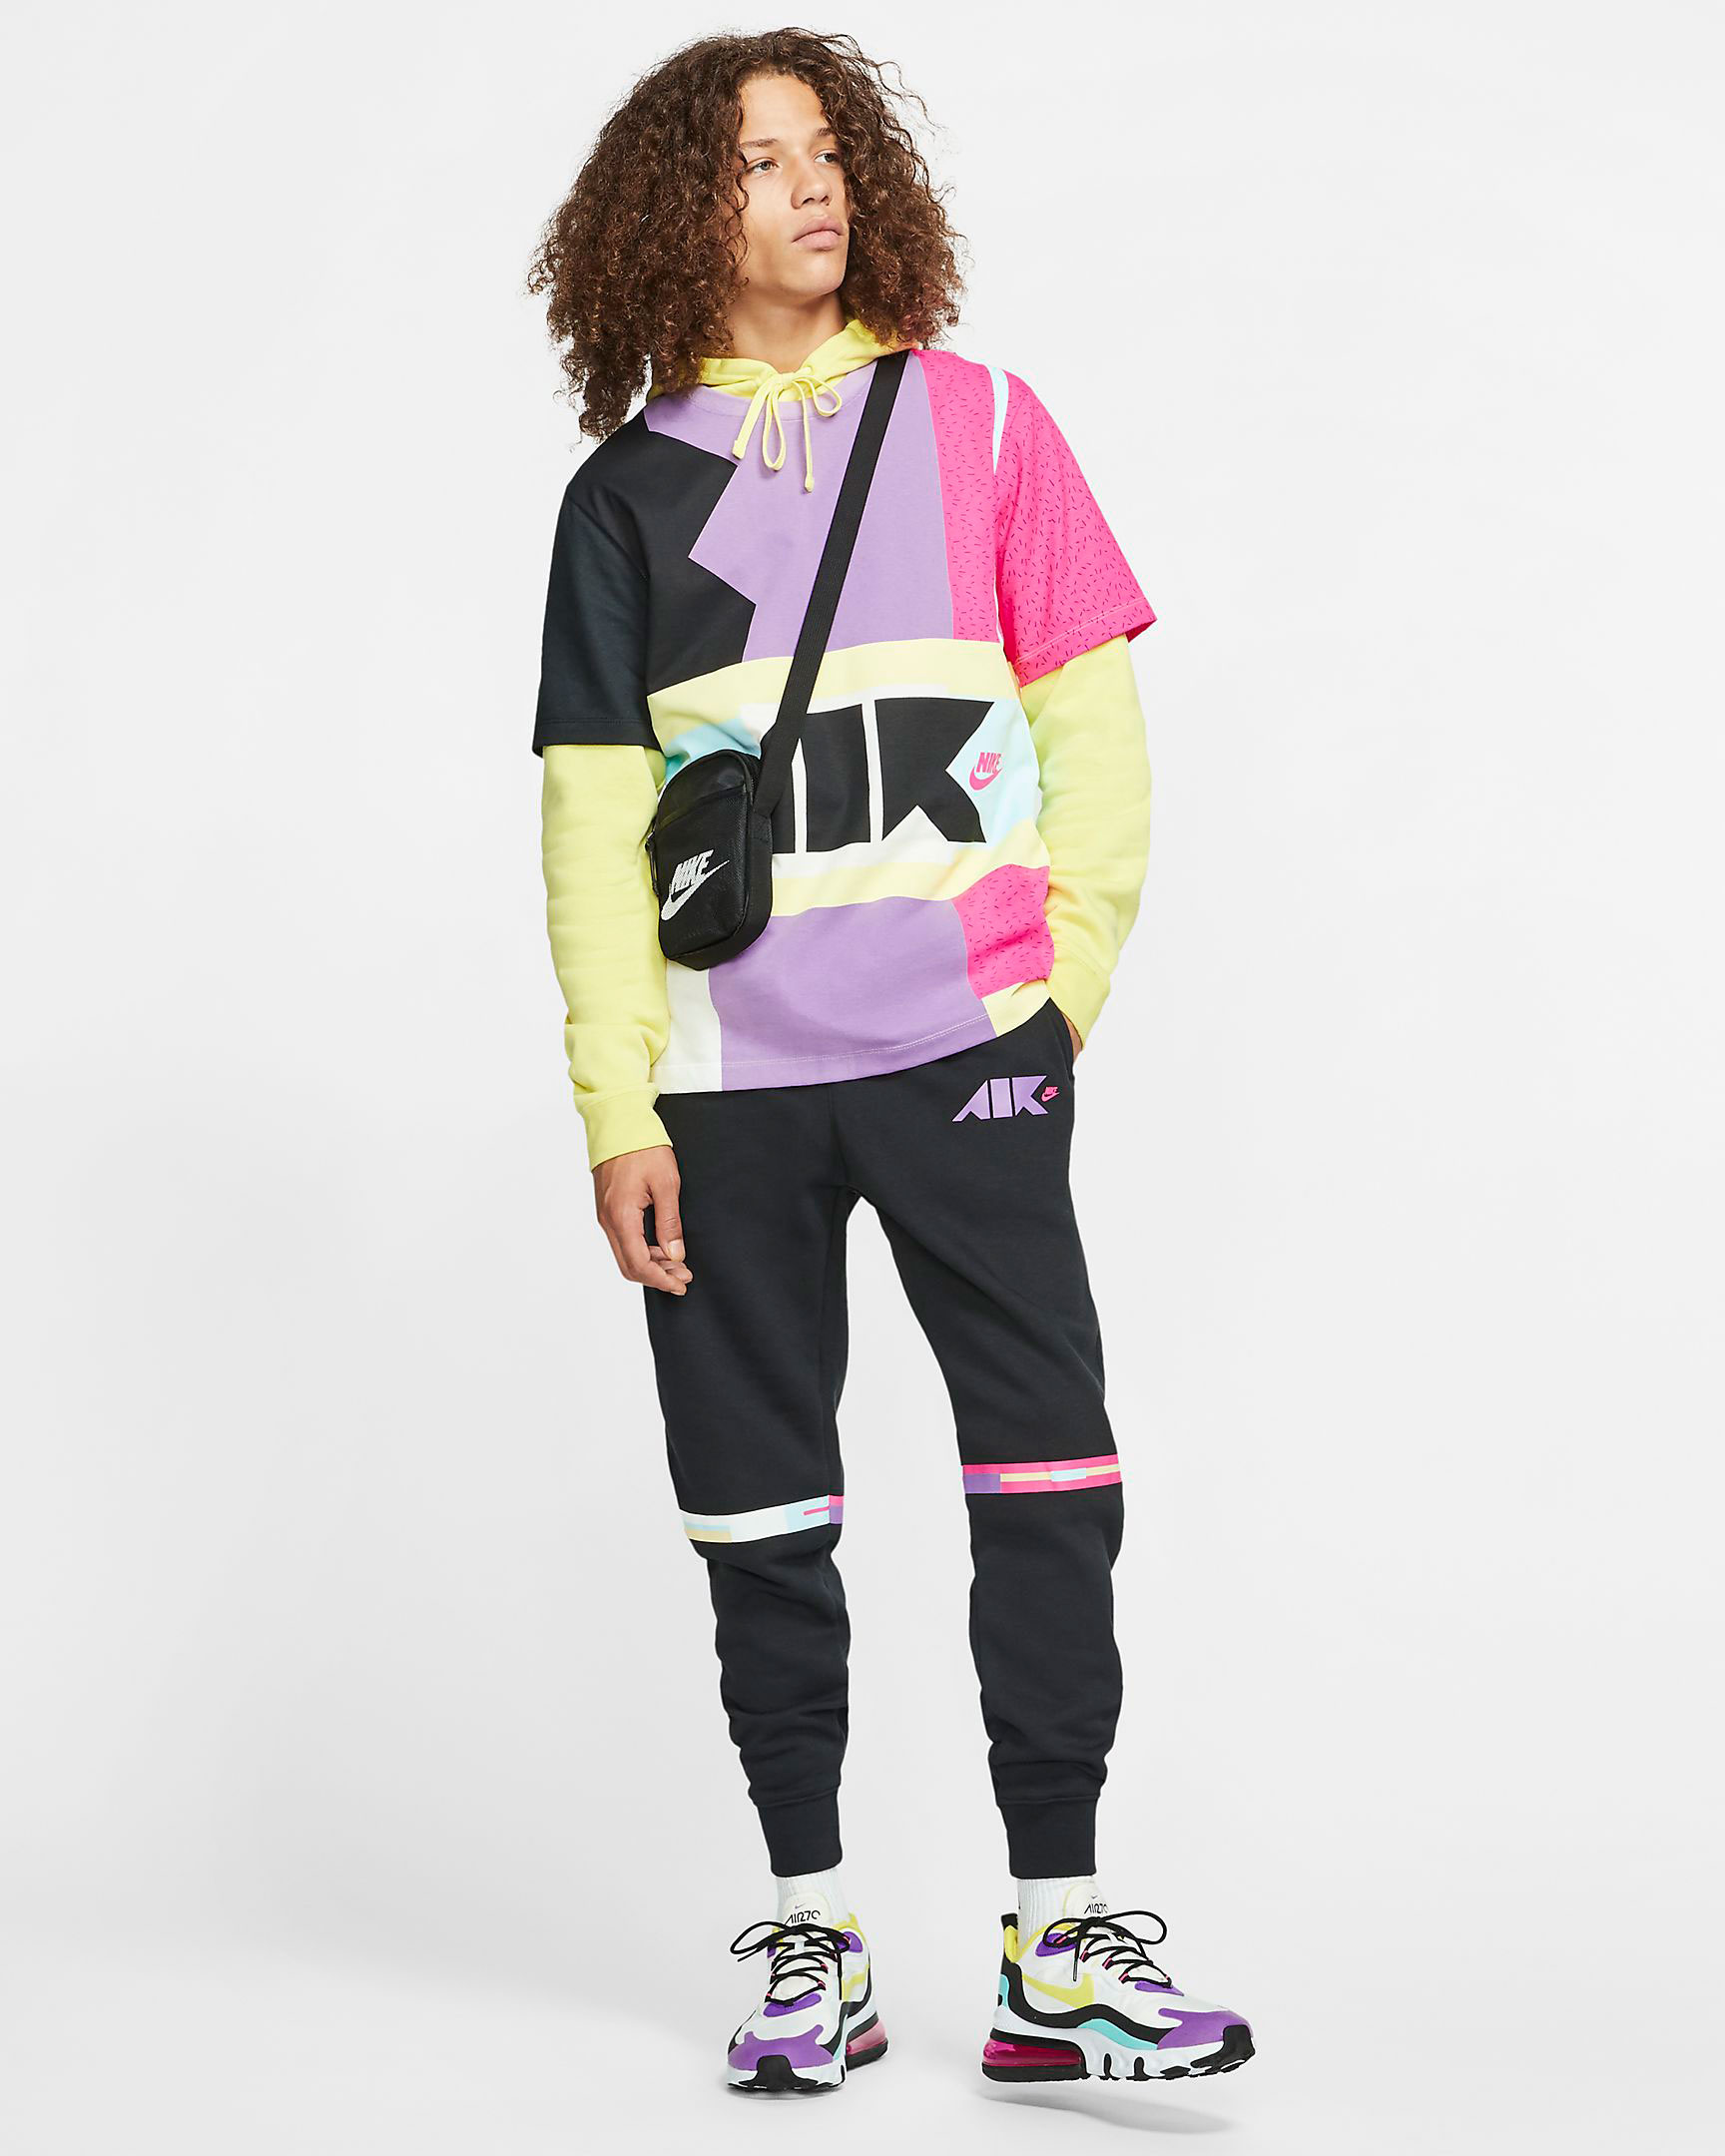 nike-geometric-clothing-sneaker-outfit